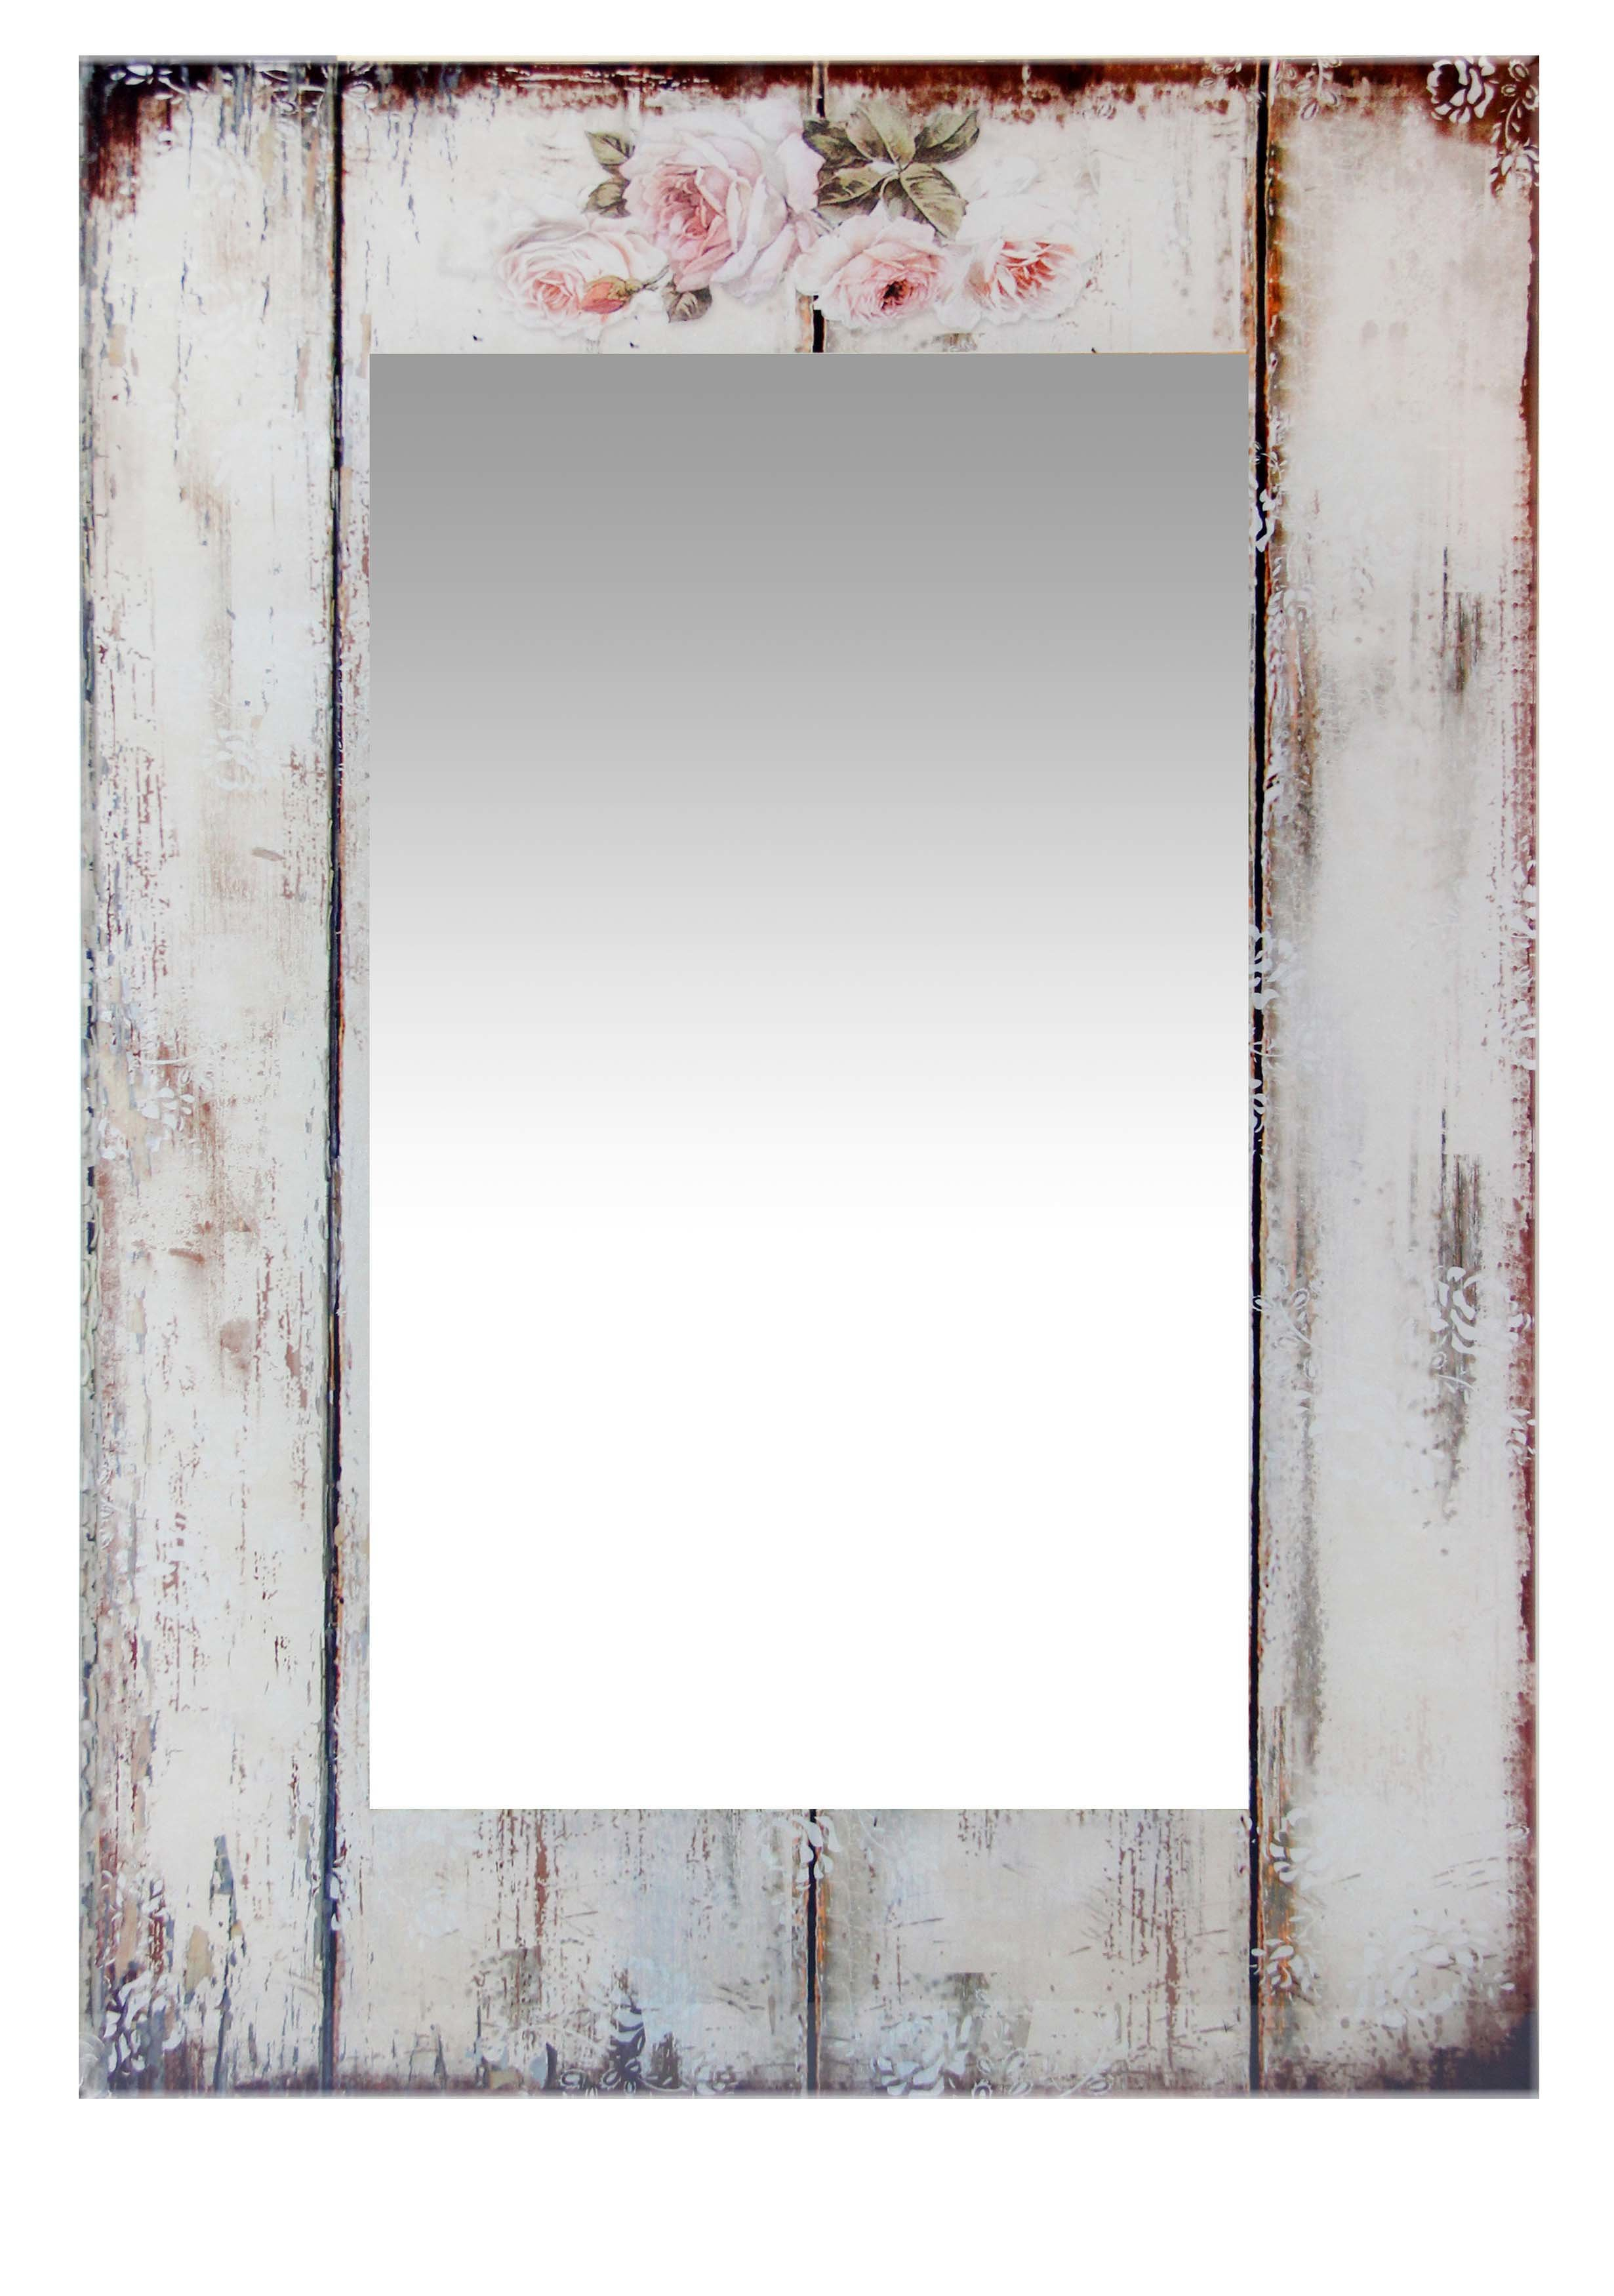 Seychella Accent Mirror Regarding Longwood Rustic Beveled Accent Mirrors (Image 13 of 20)